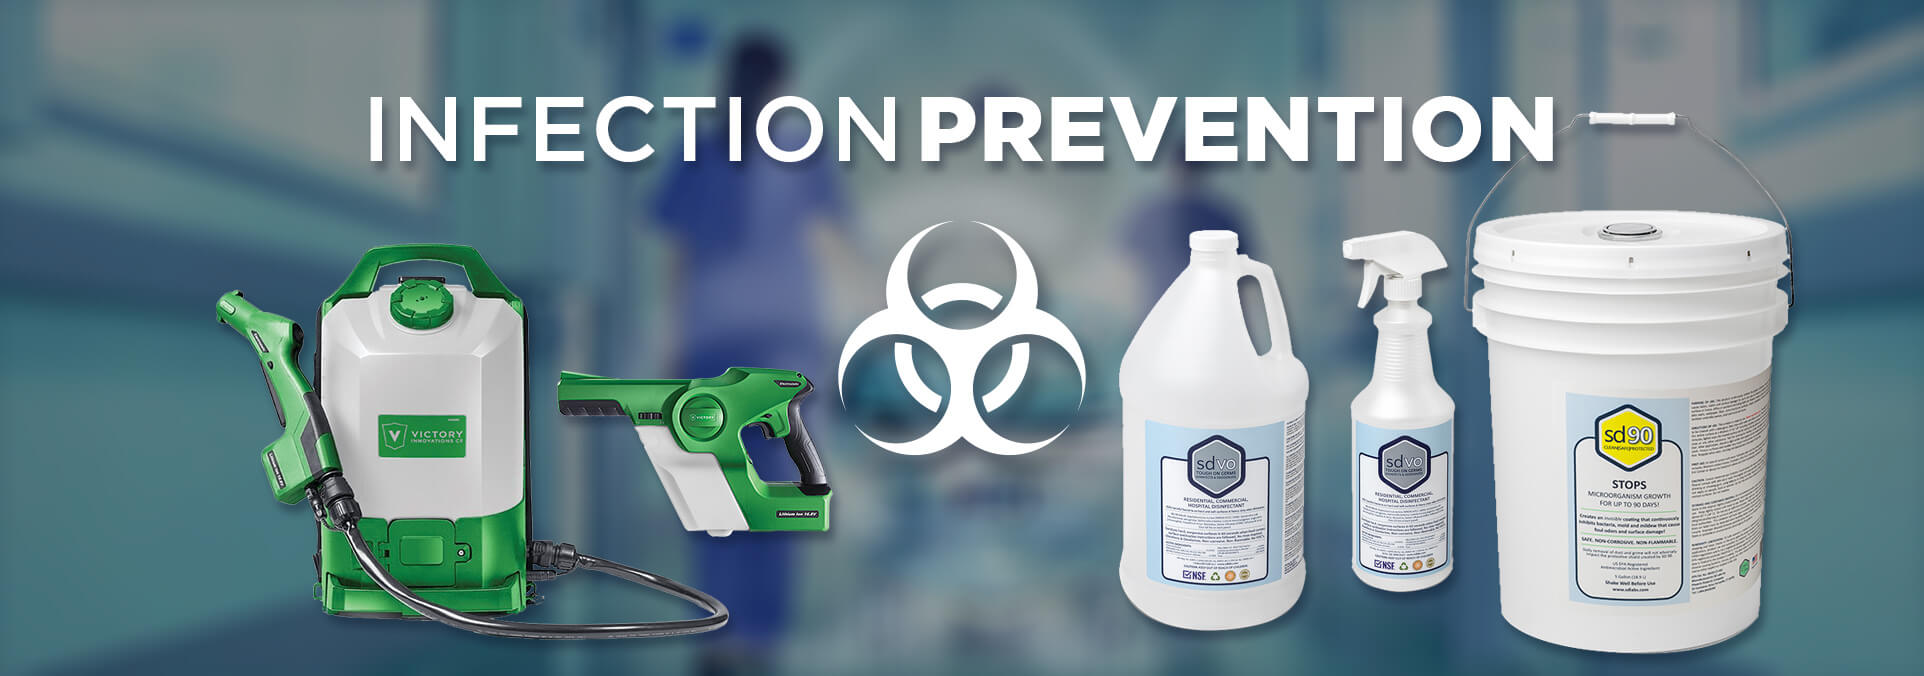 Virus Protection, Safe Disinfectants